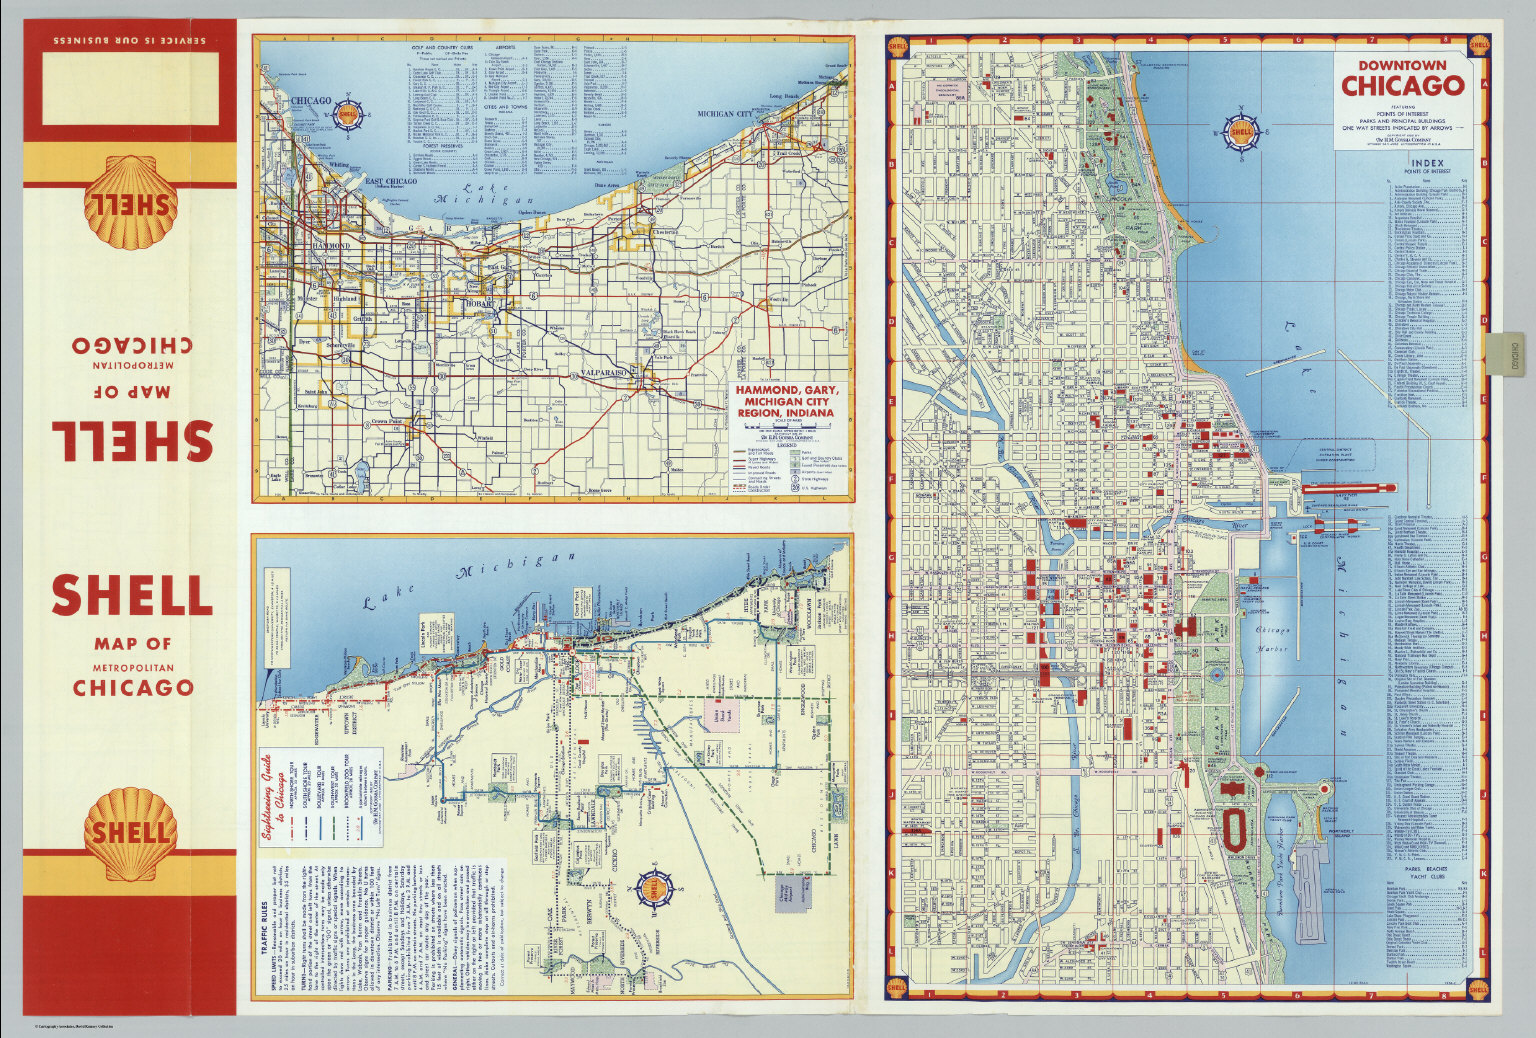 Michigan And Indiana Map.Downtown Chicago Hammond Gary Michigan City Region Indiana